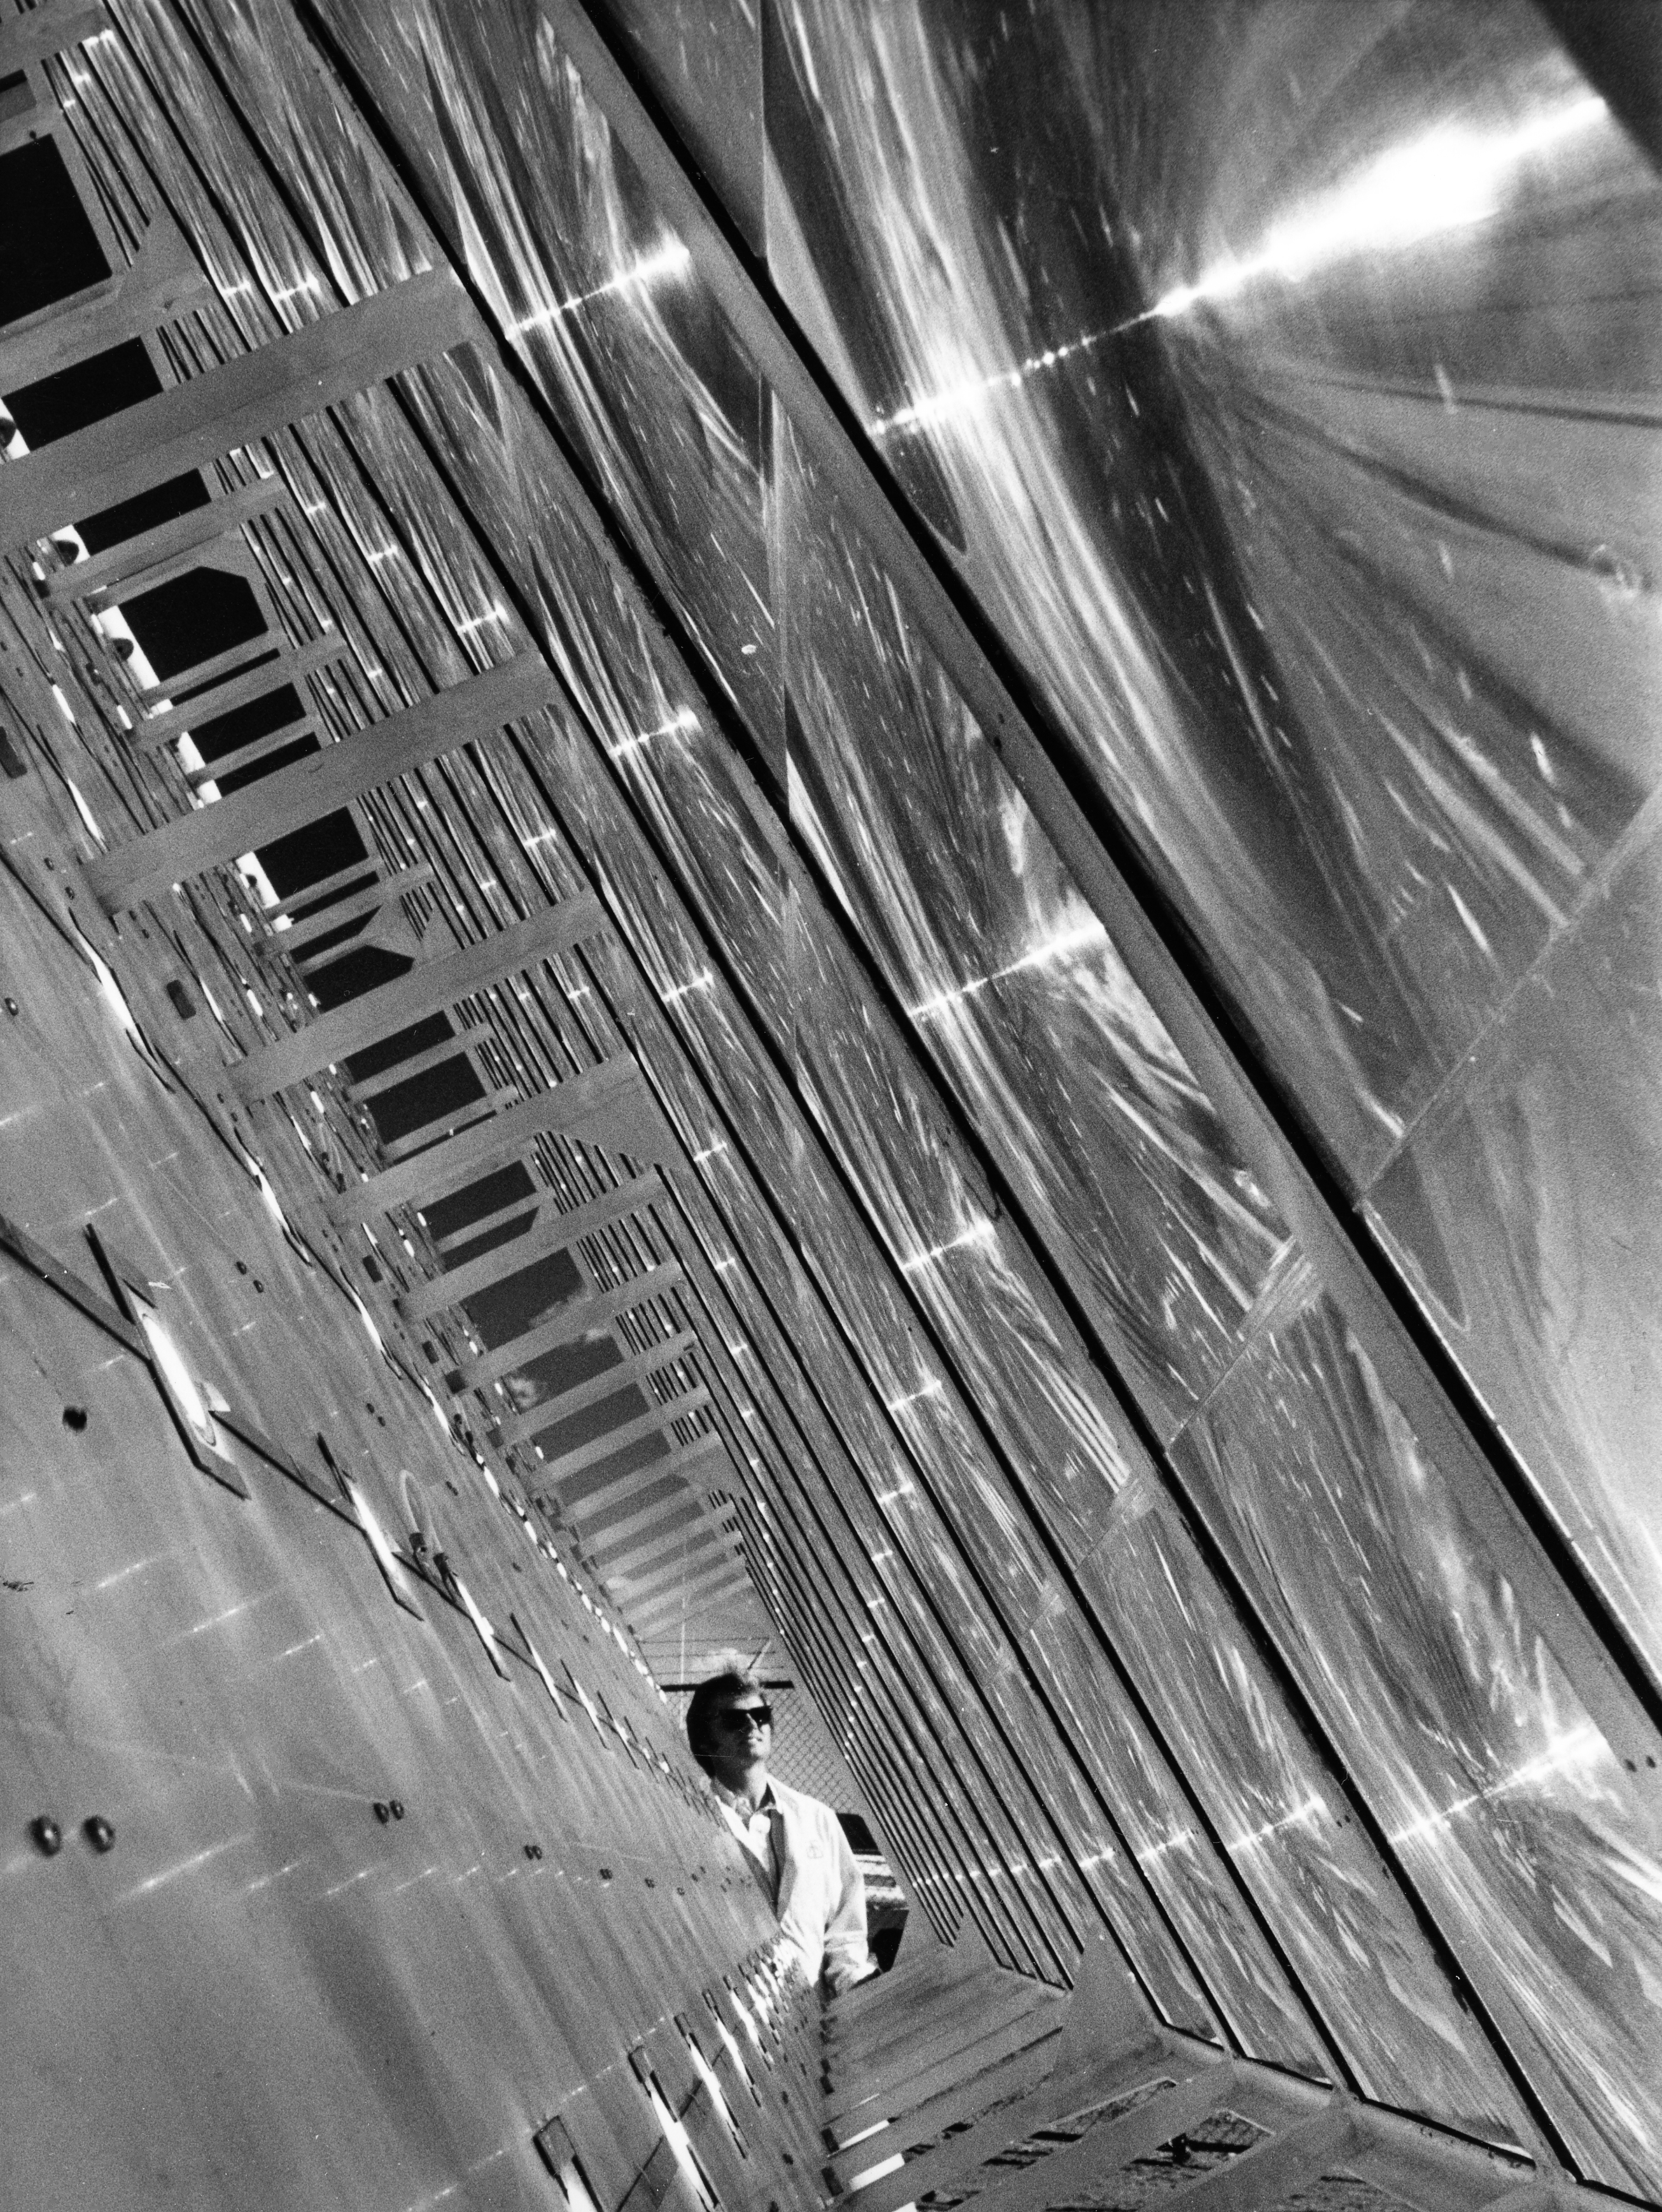 The photograph shows the space between a large concentrator array with a man in sunglasses standing behind the concentrator, but appearing between the space.